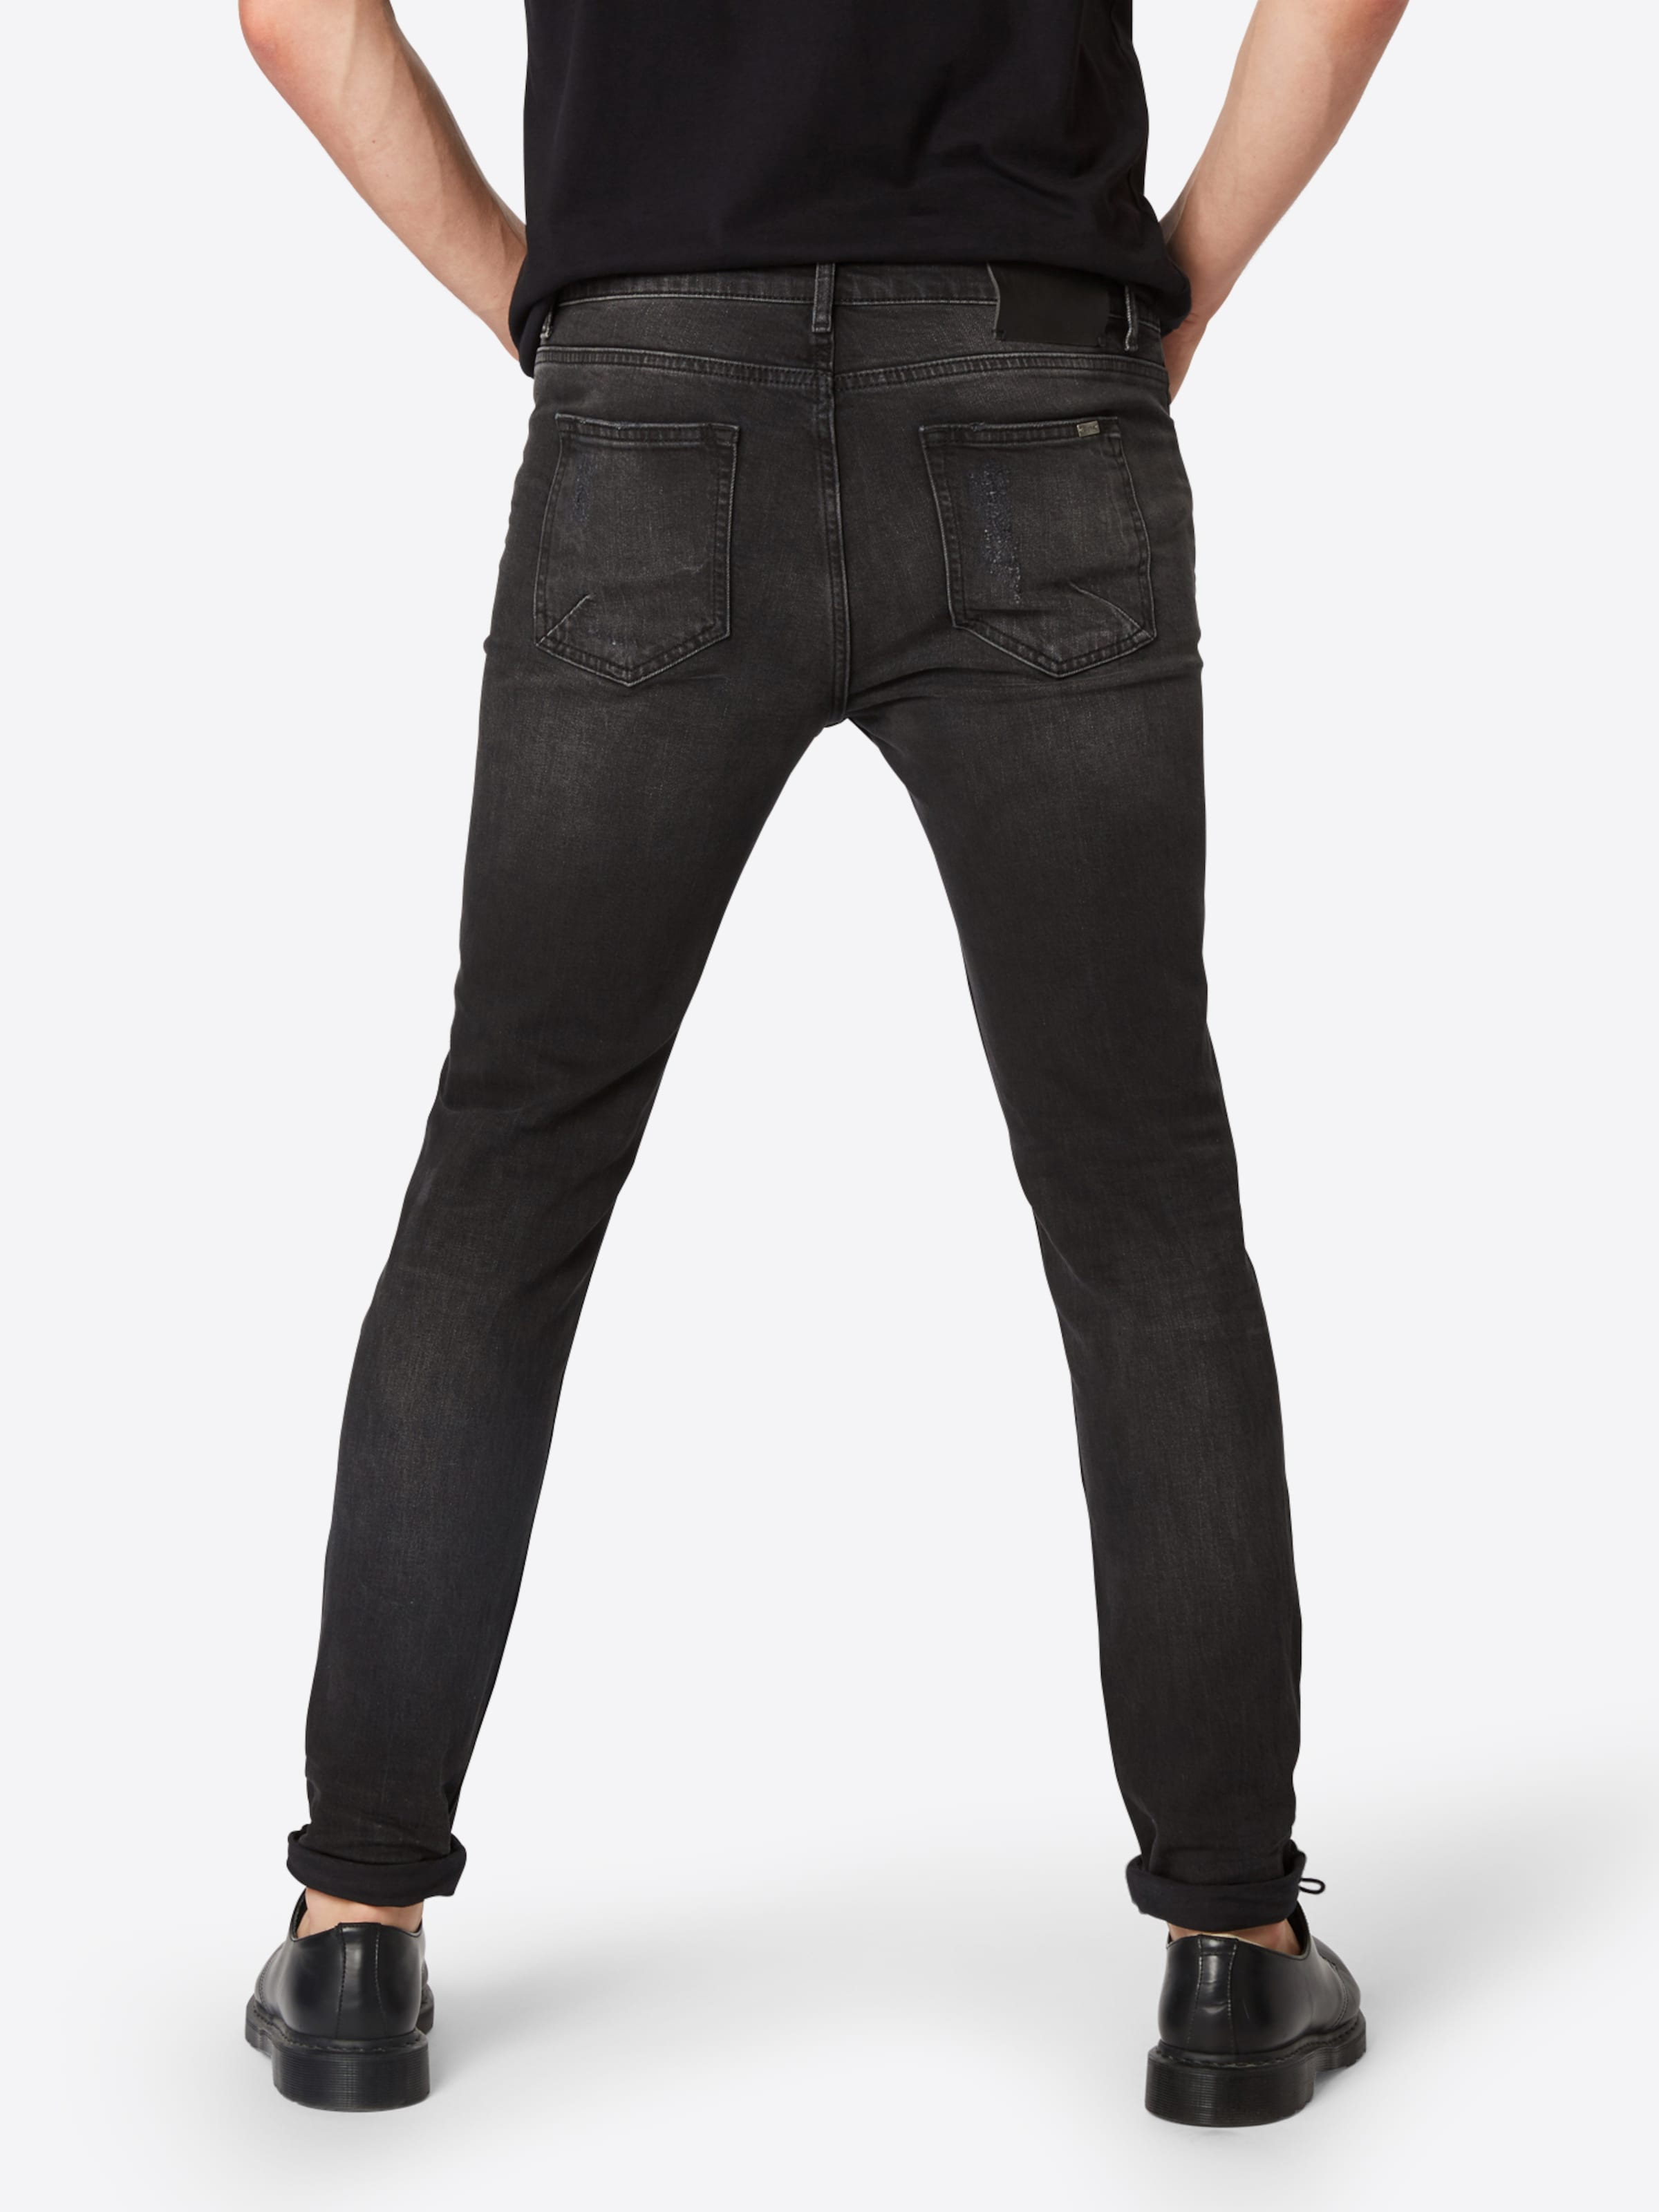 9407' Jean En AnthraciteNoir Denim 'morten Tigha CoWxeQdBr